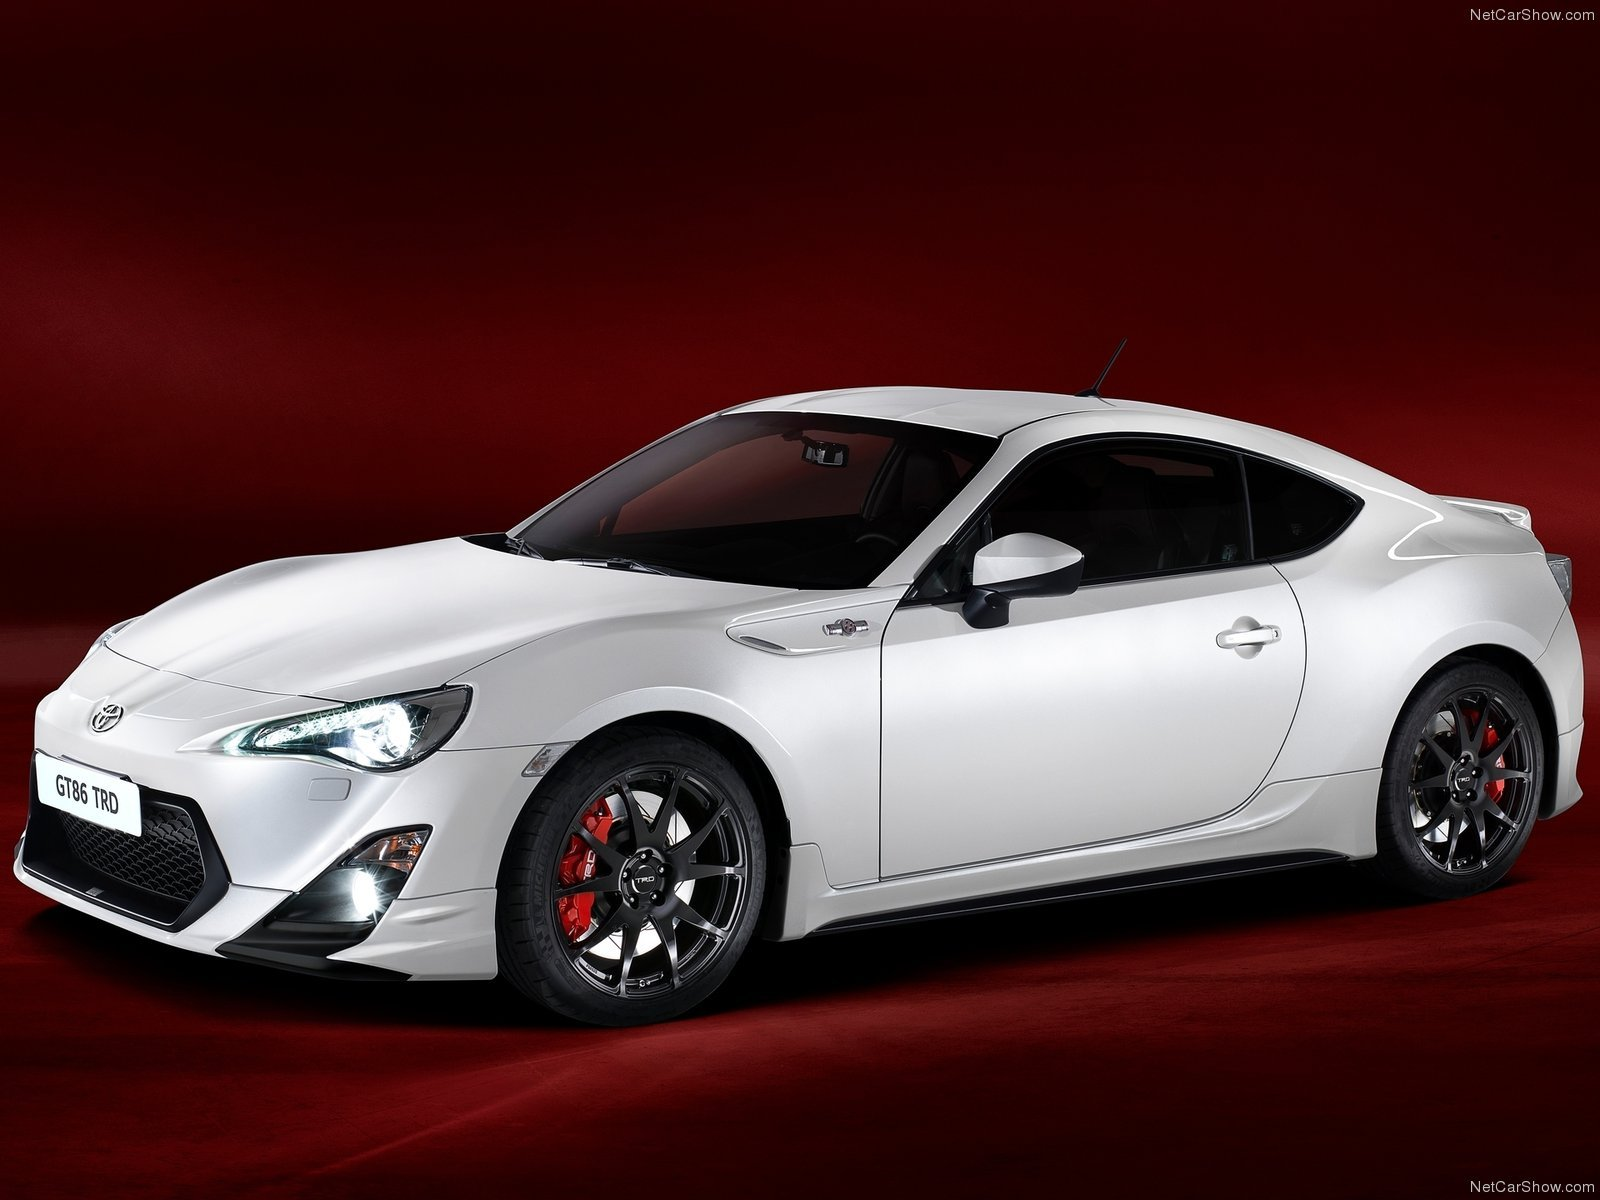 toyota gt86 trd 2014 japan white blanche coupe 2 doors. Black Bedroom Furniture Sets. Home Design Ideas